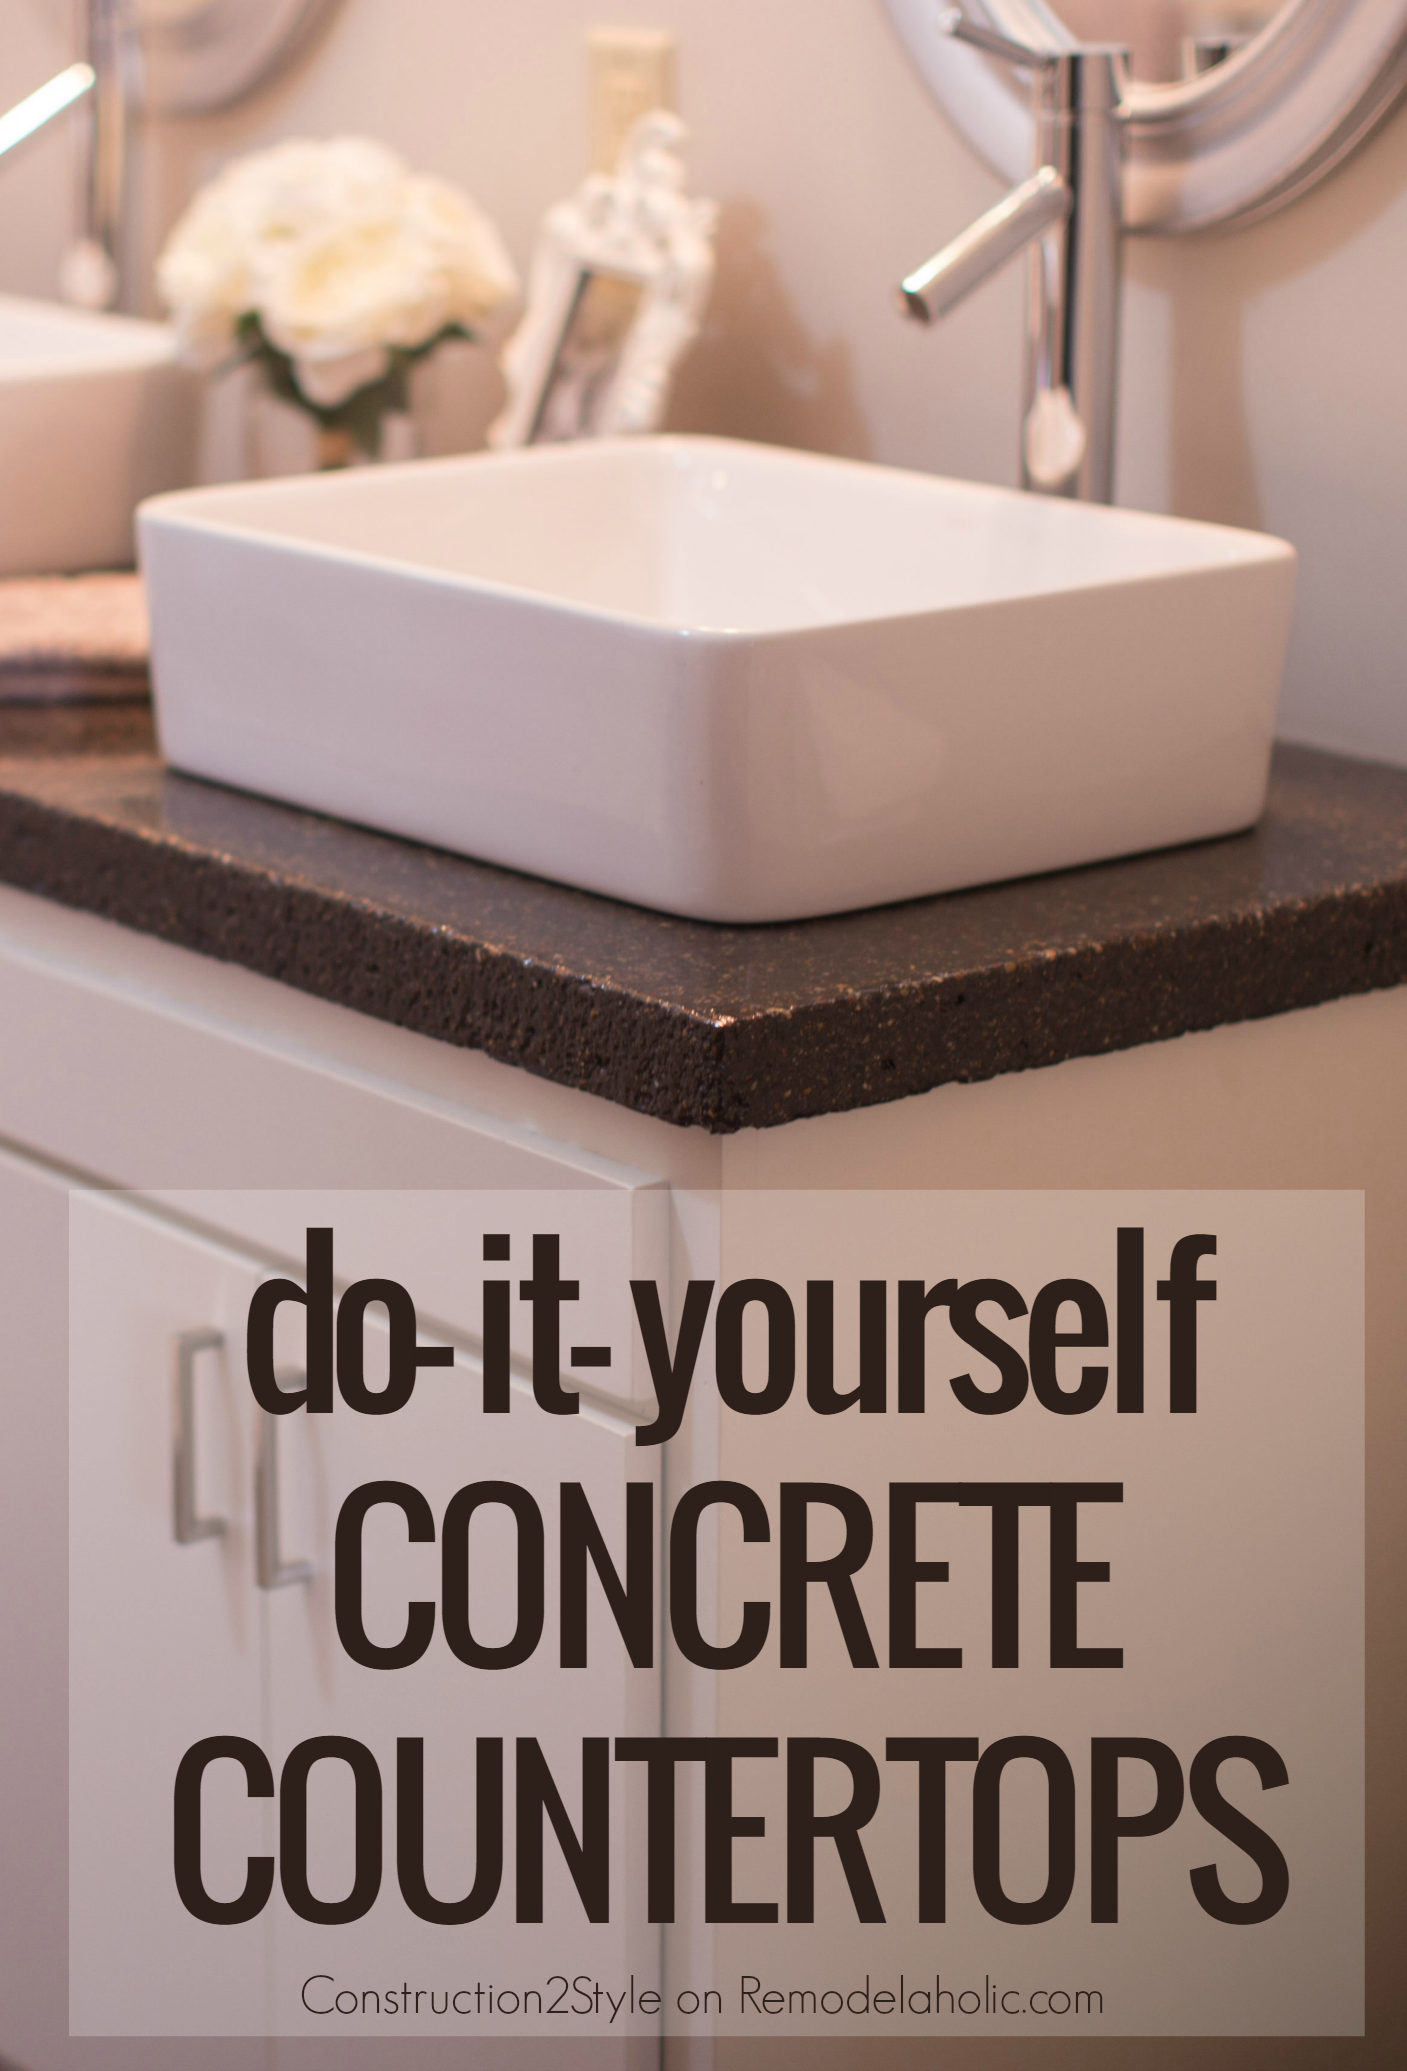 remodelaholic diy concrete countertops in a beautiful master bathroom renovation. Black Bedroom Furniture Sets. Home Design Ideas